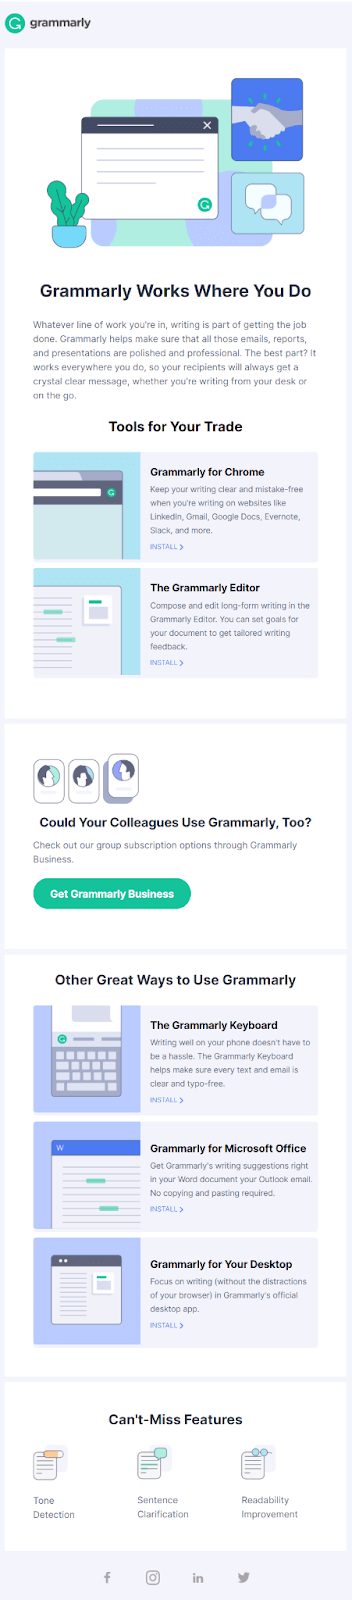 Onboarding email example #3